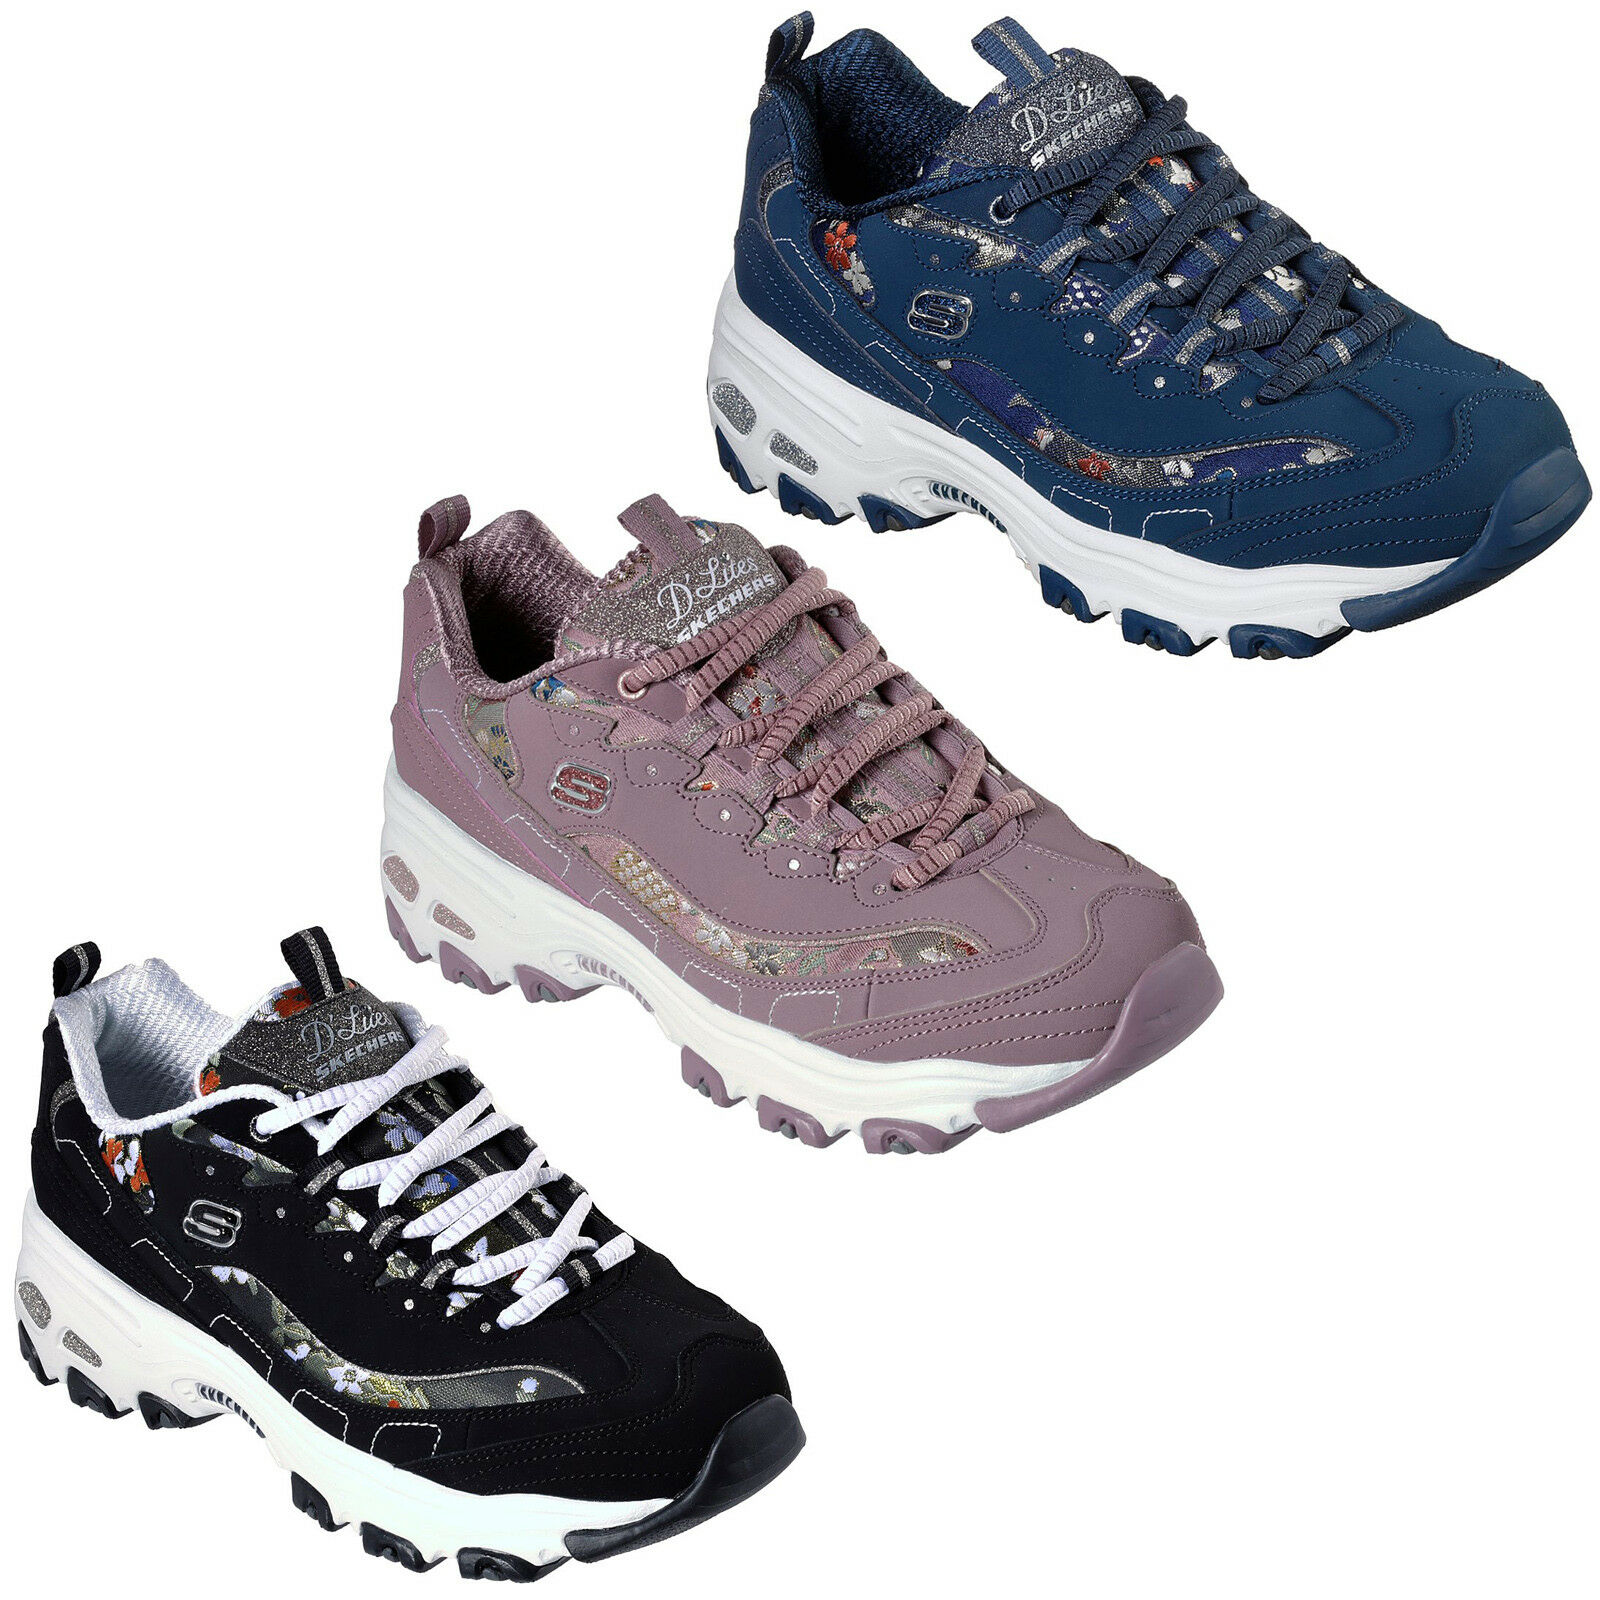 Skechers D'Lites - Floral Days Trainers 13082 Damenschuhe Memory Foam Chunky Schuhes